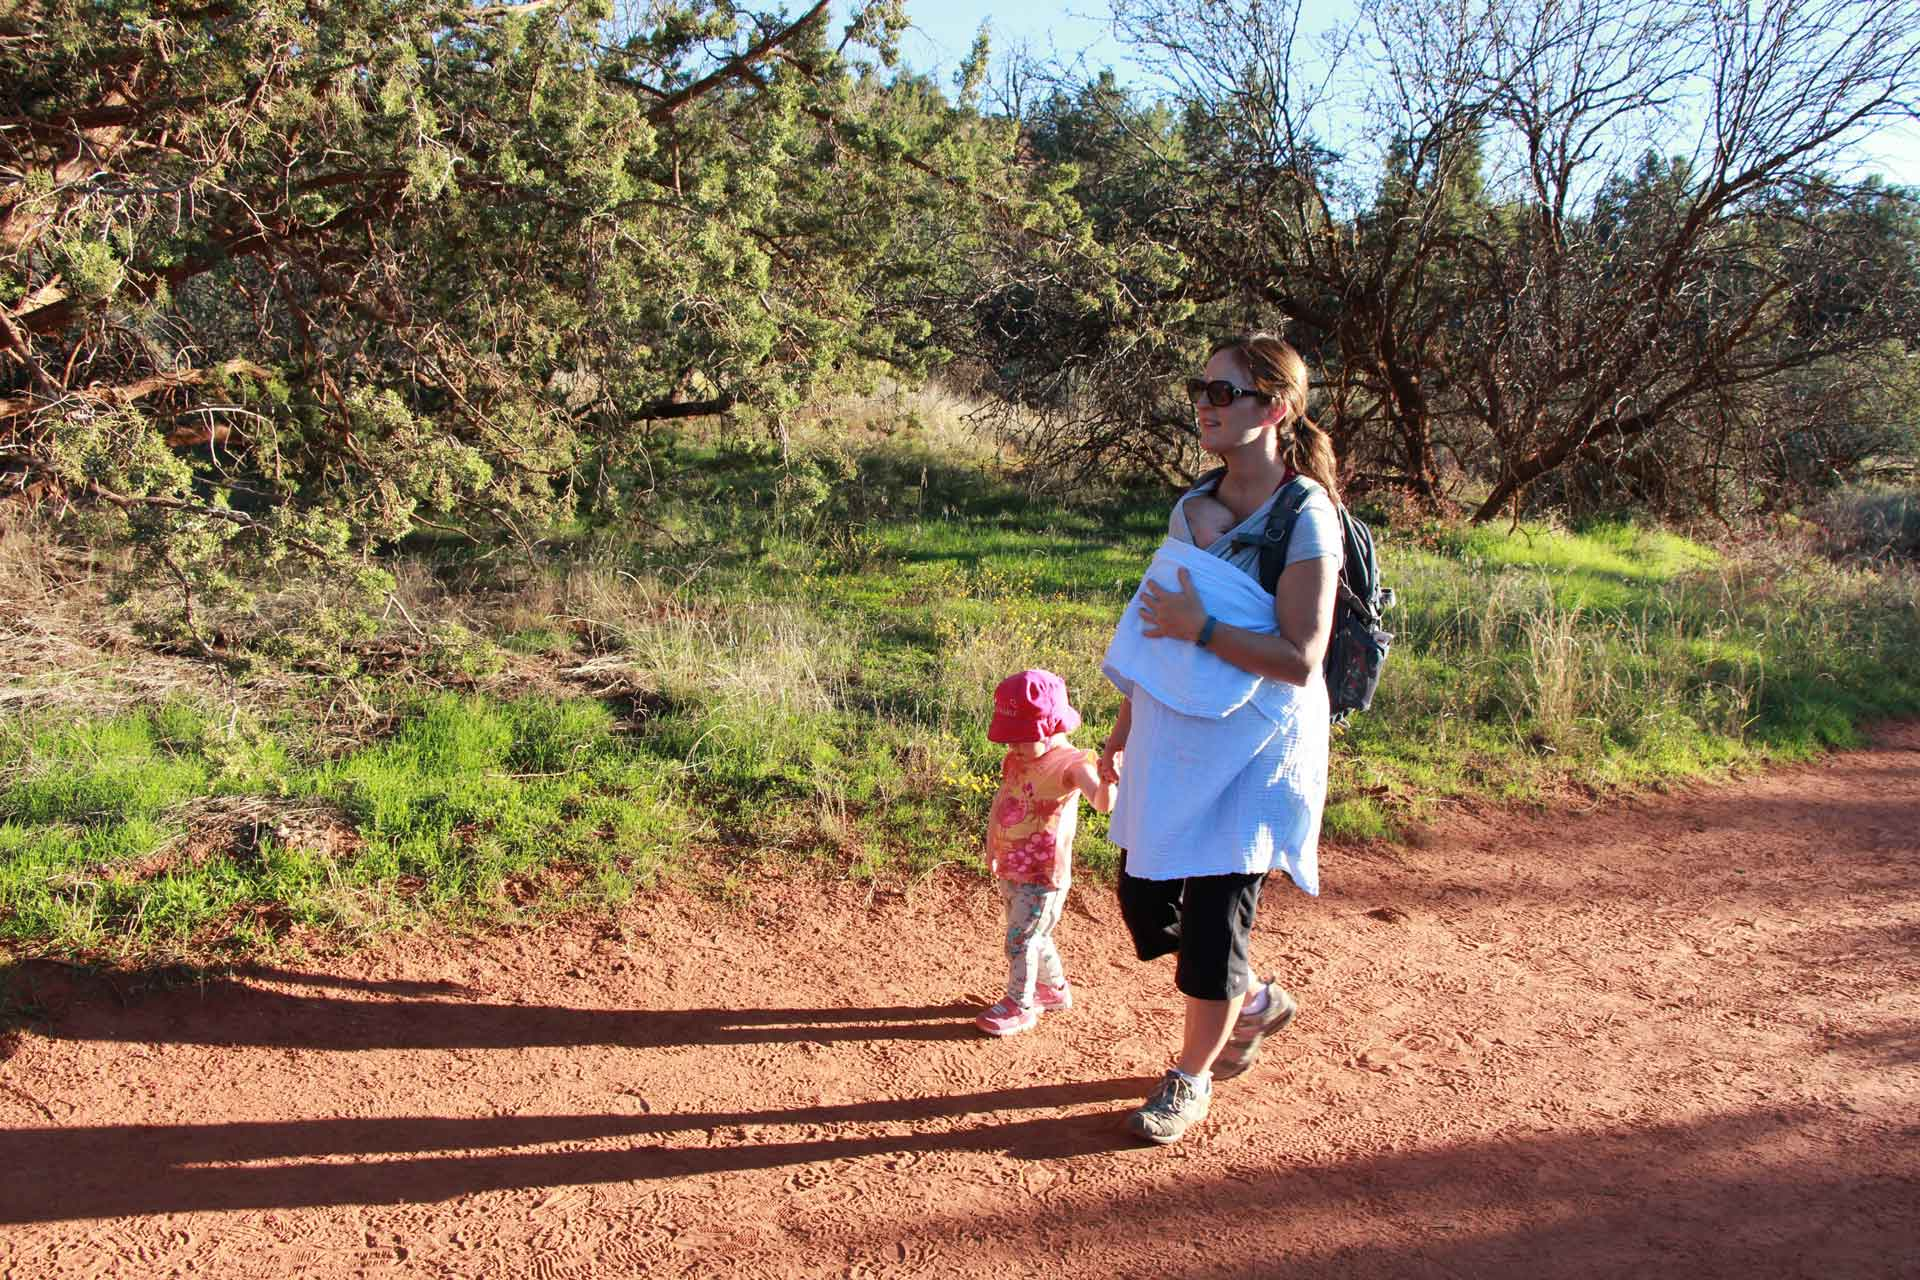 Baldwin hike in Sedona with a toddler